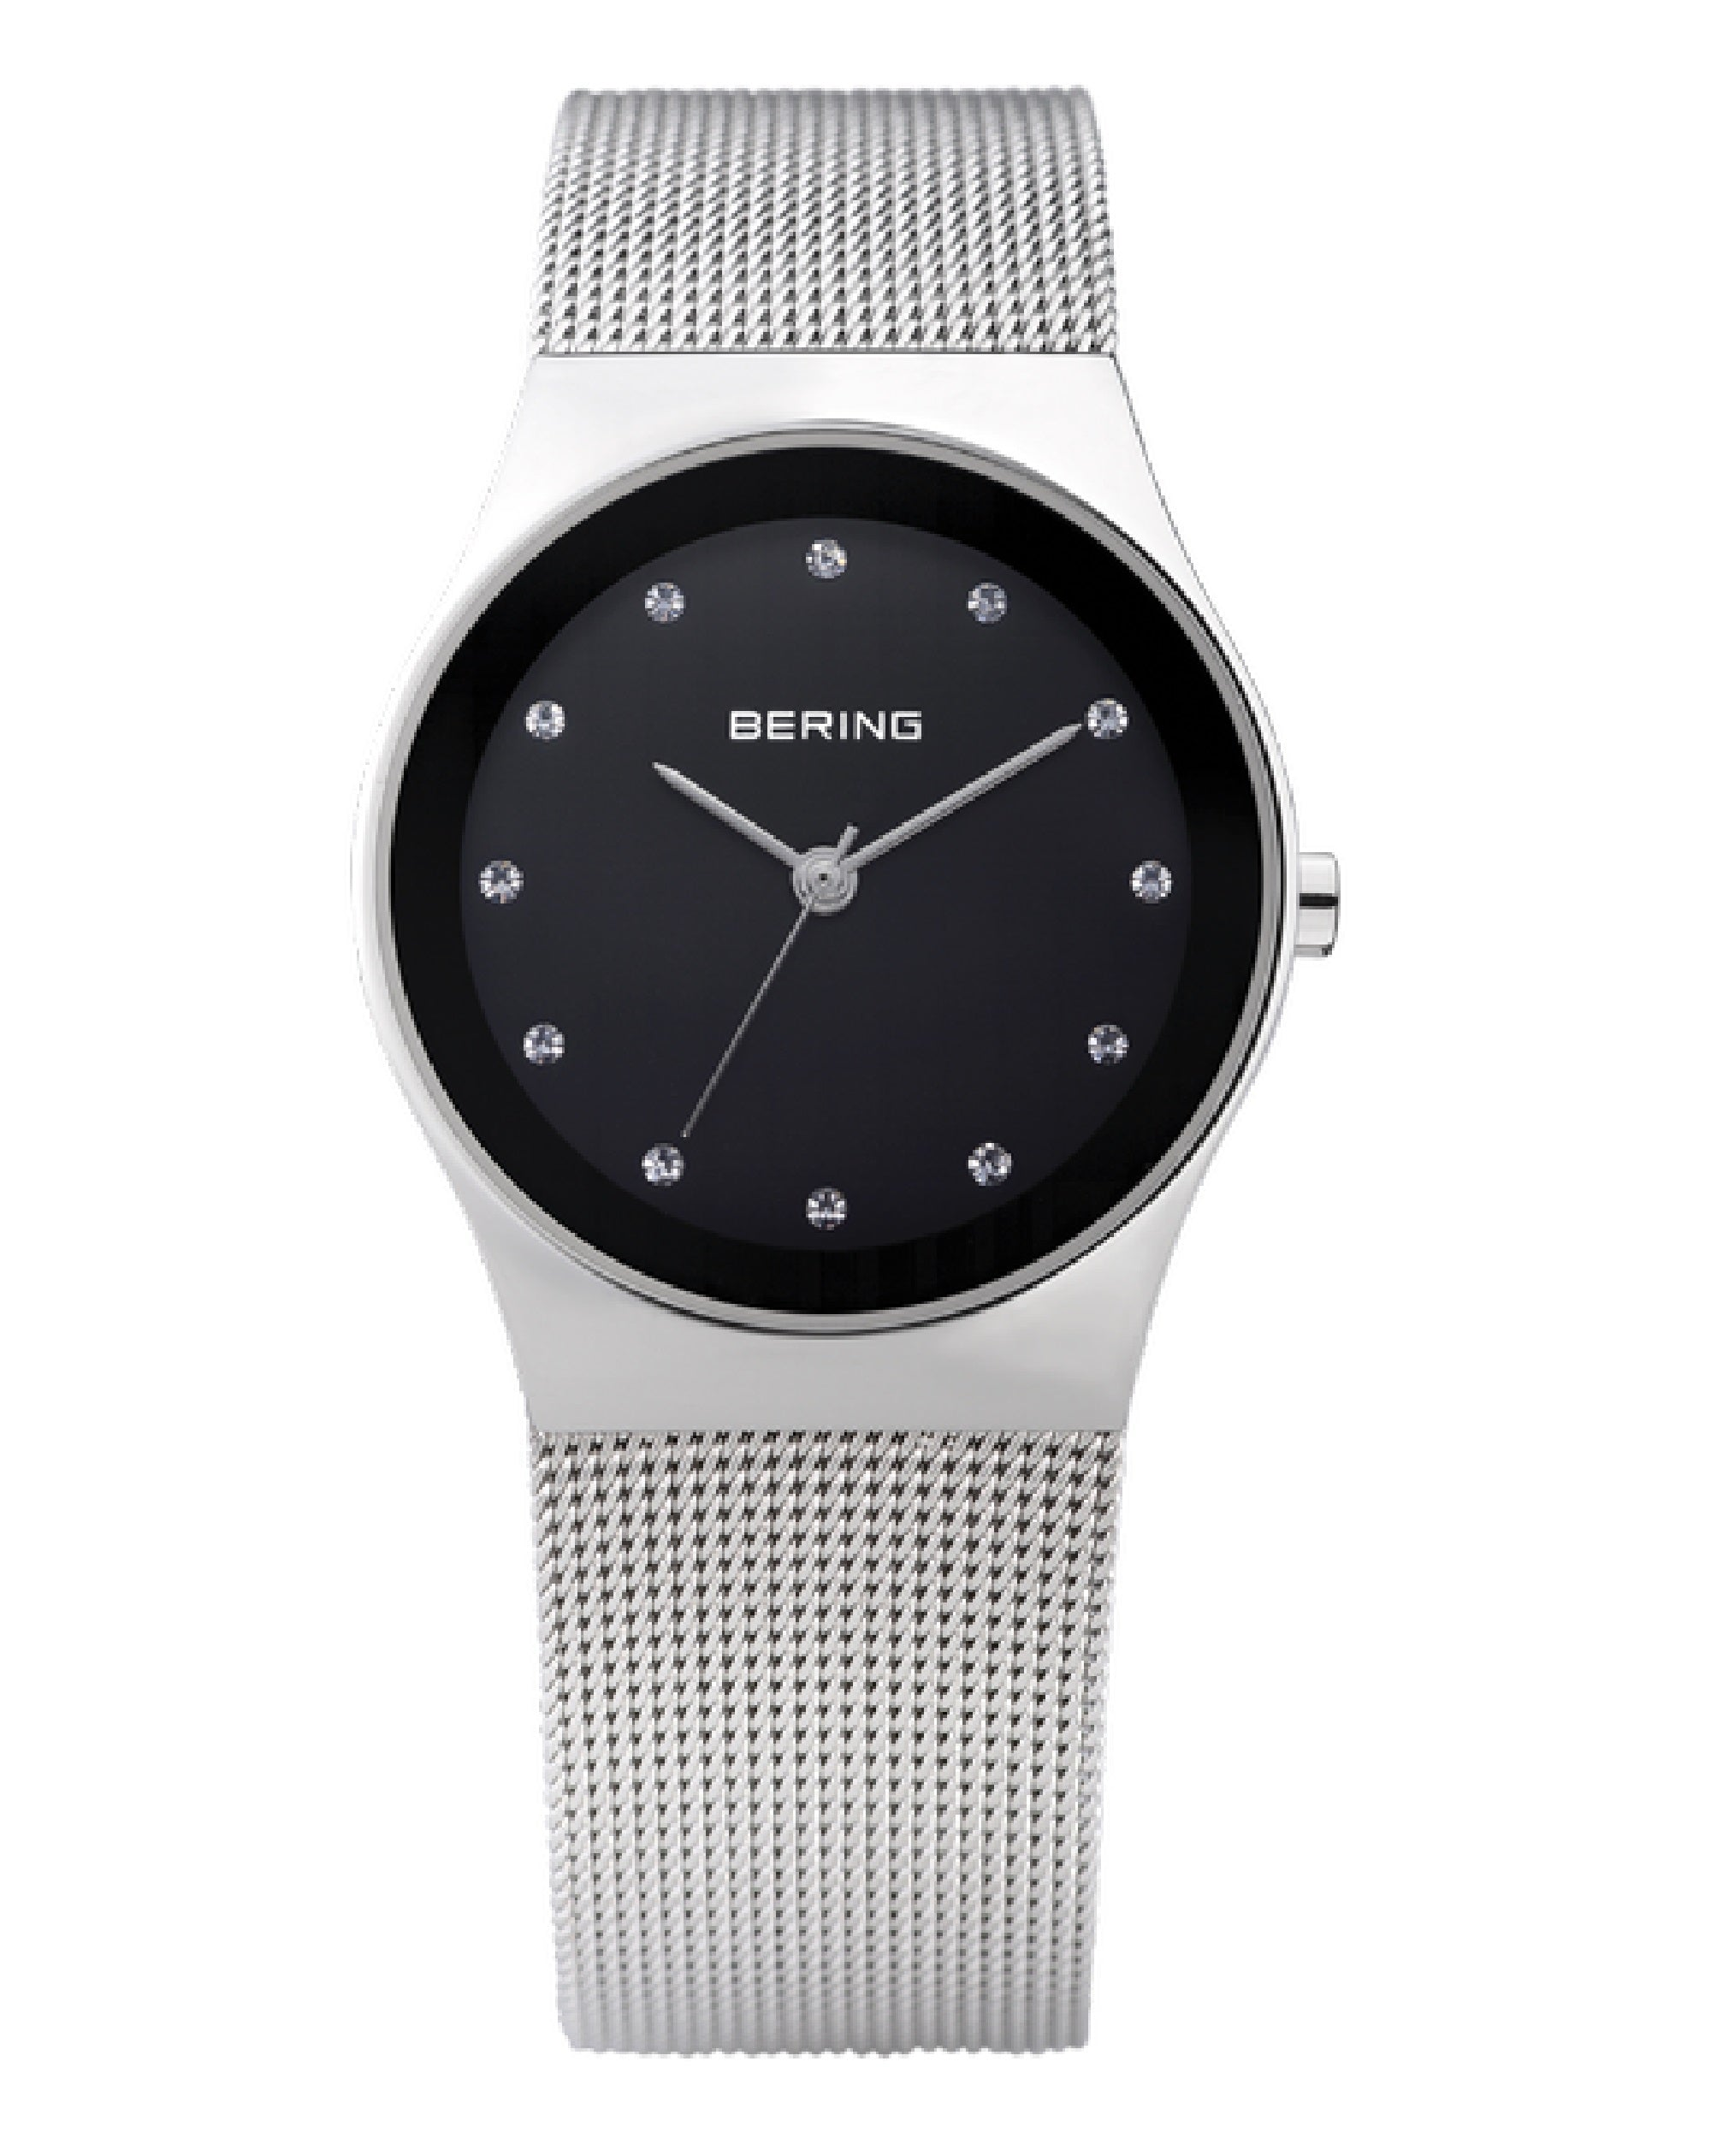 12927-002 Bering Classic Collection Quartz Watch